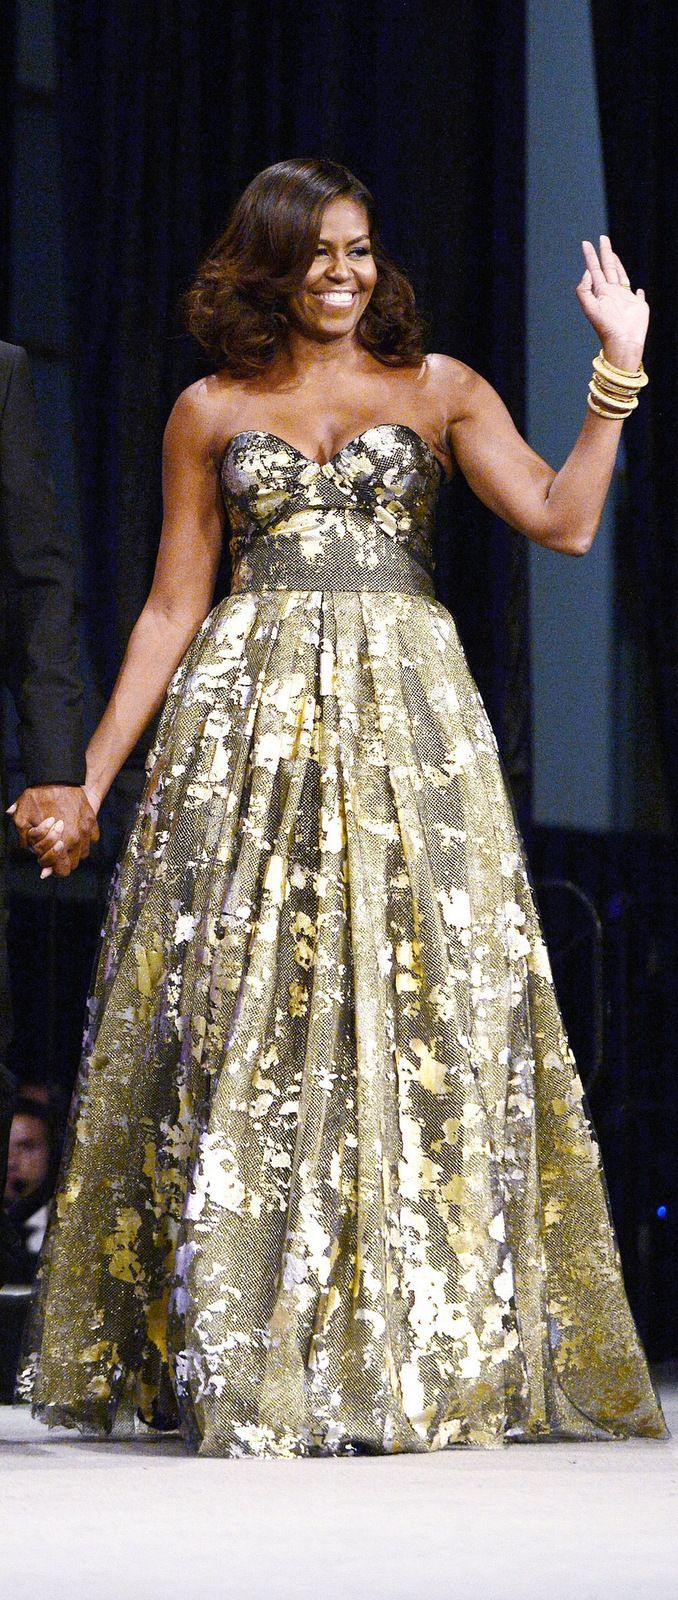 Michelle Obama in Naeem Khan at the Phoenix Awards Dinner